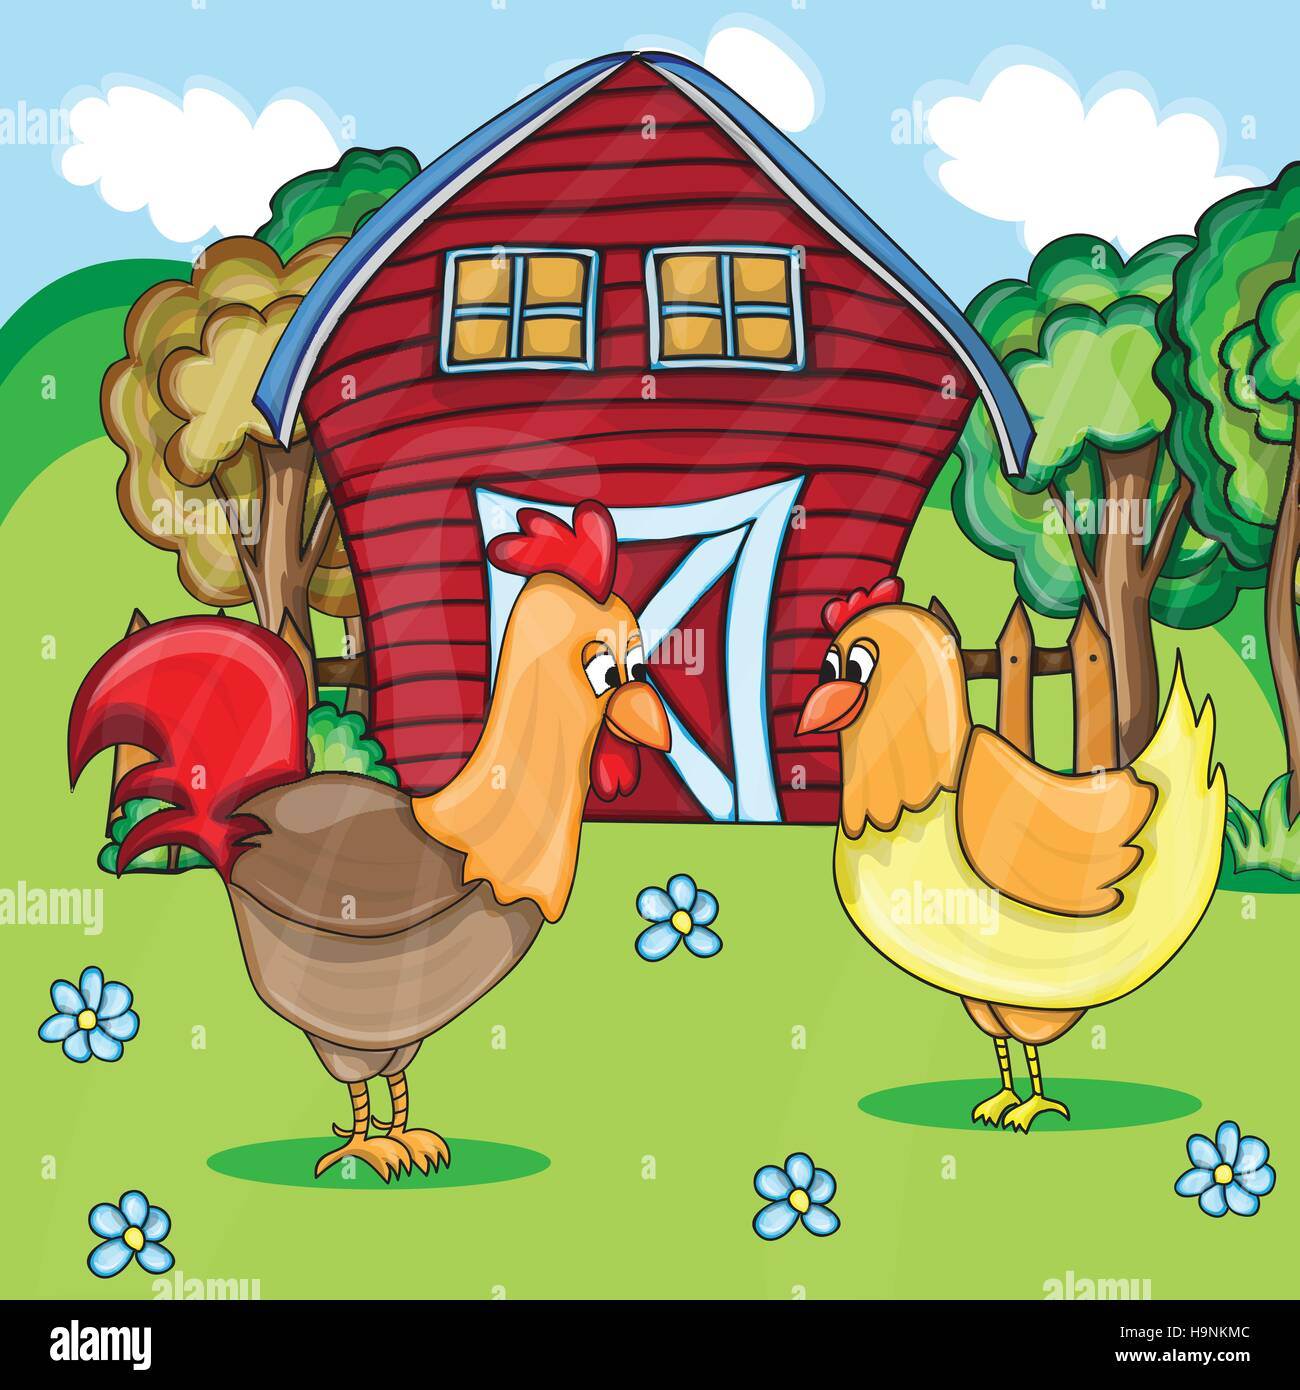 Rooster and chickens on the bacgroung of rural farm landscape - Stock Vector